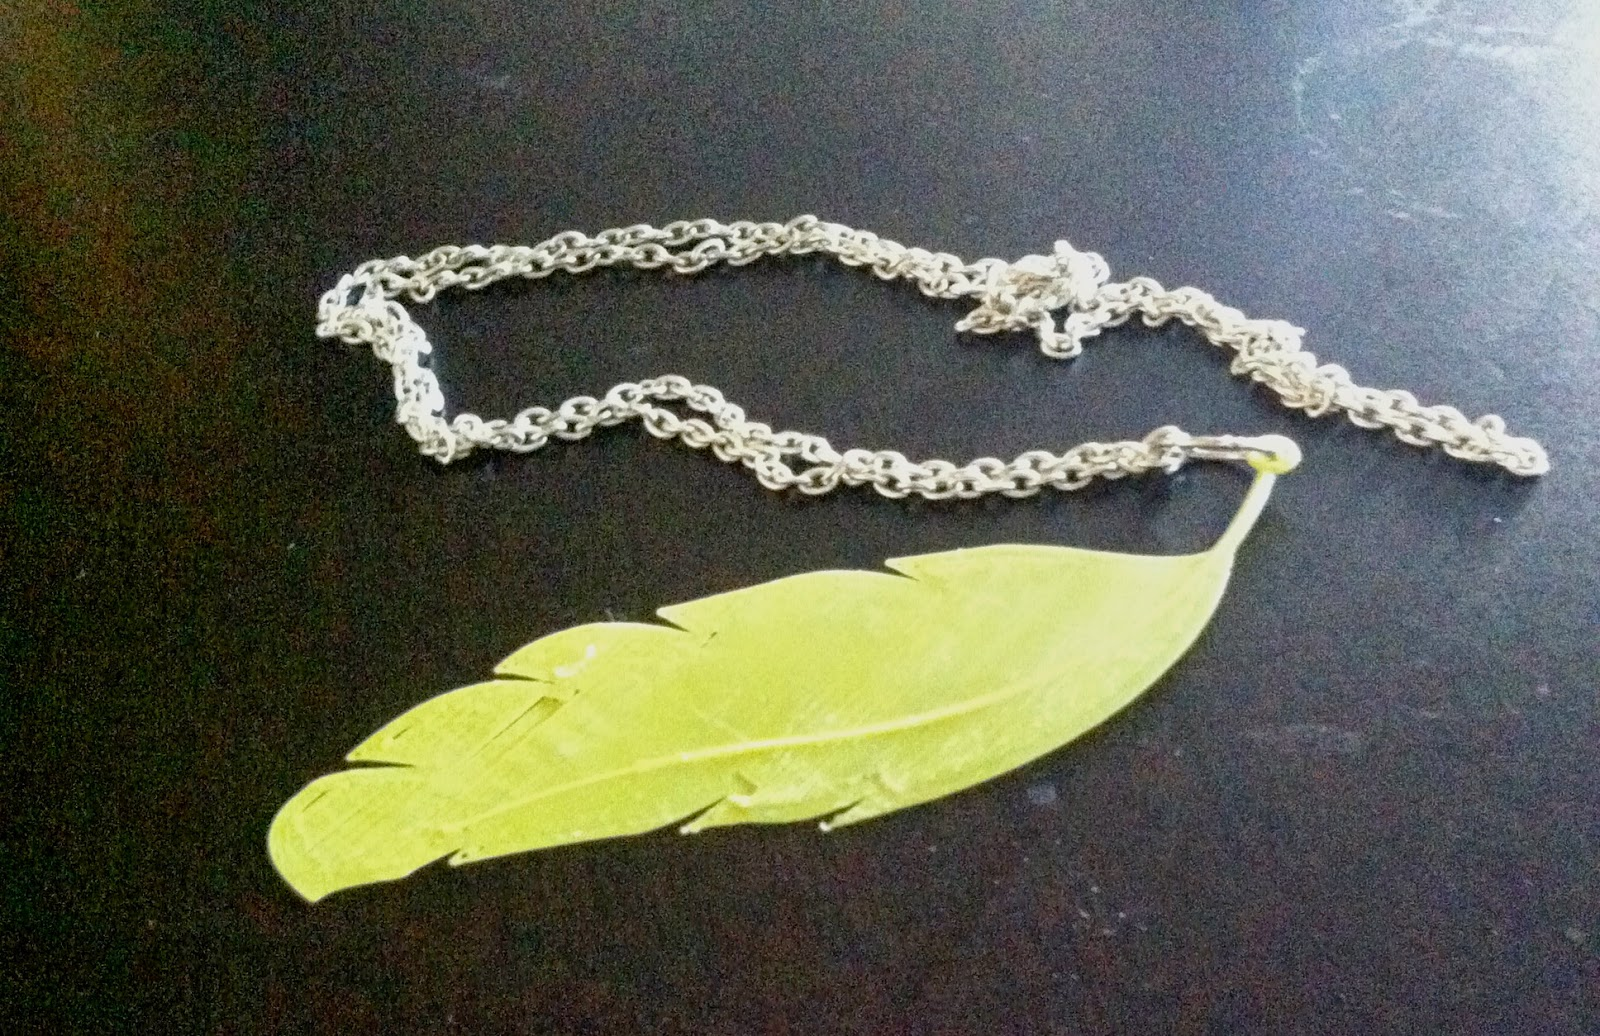 A yellow 3D printed feather on a chain.